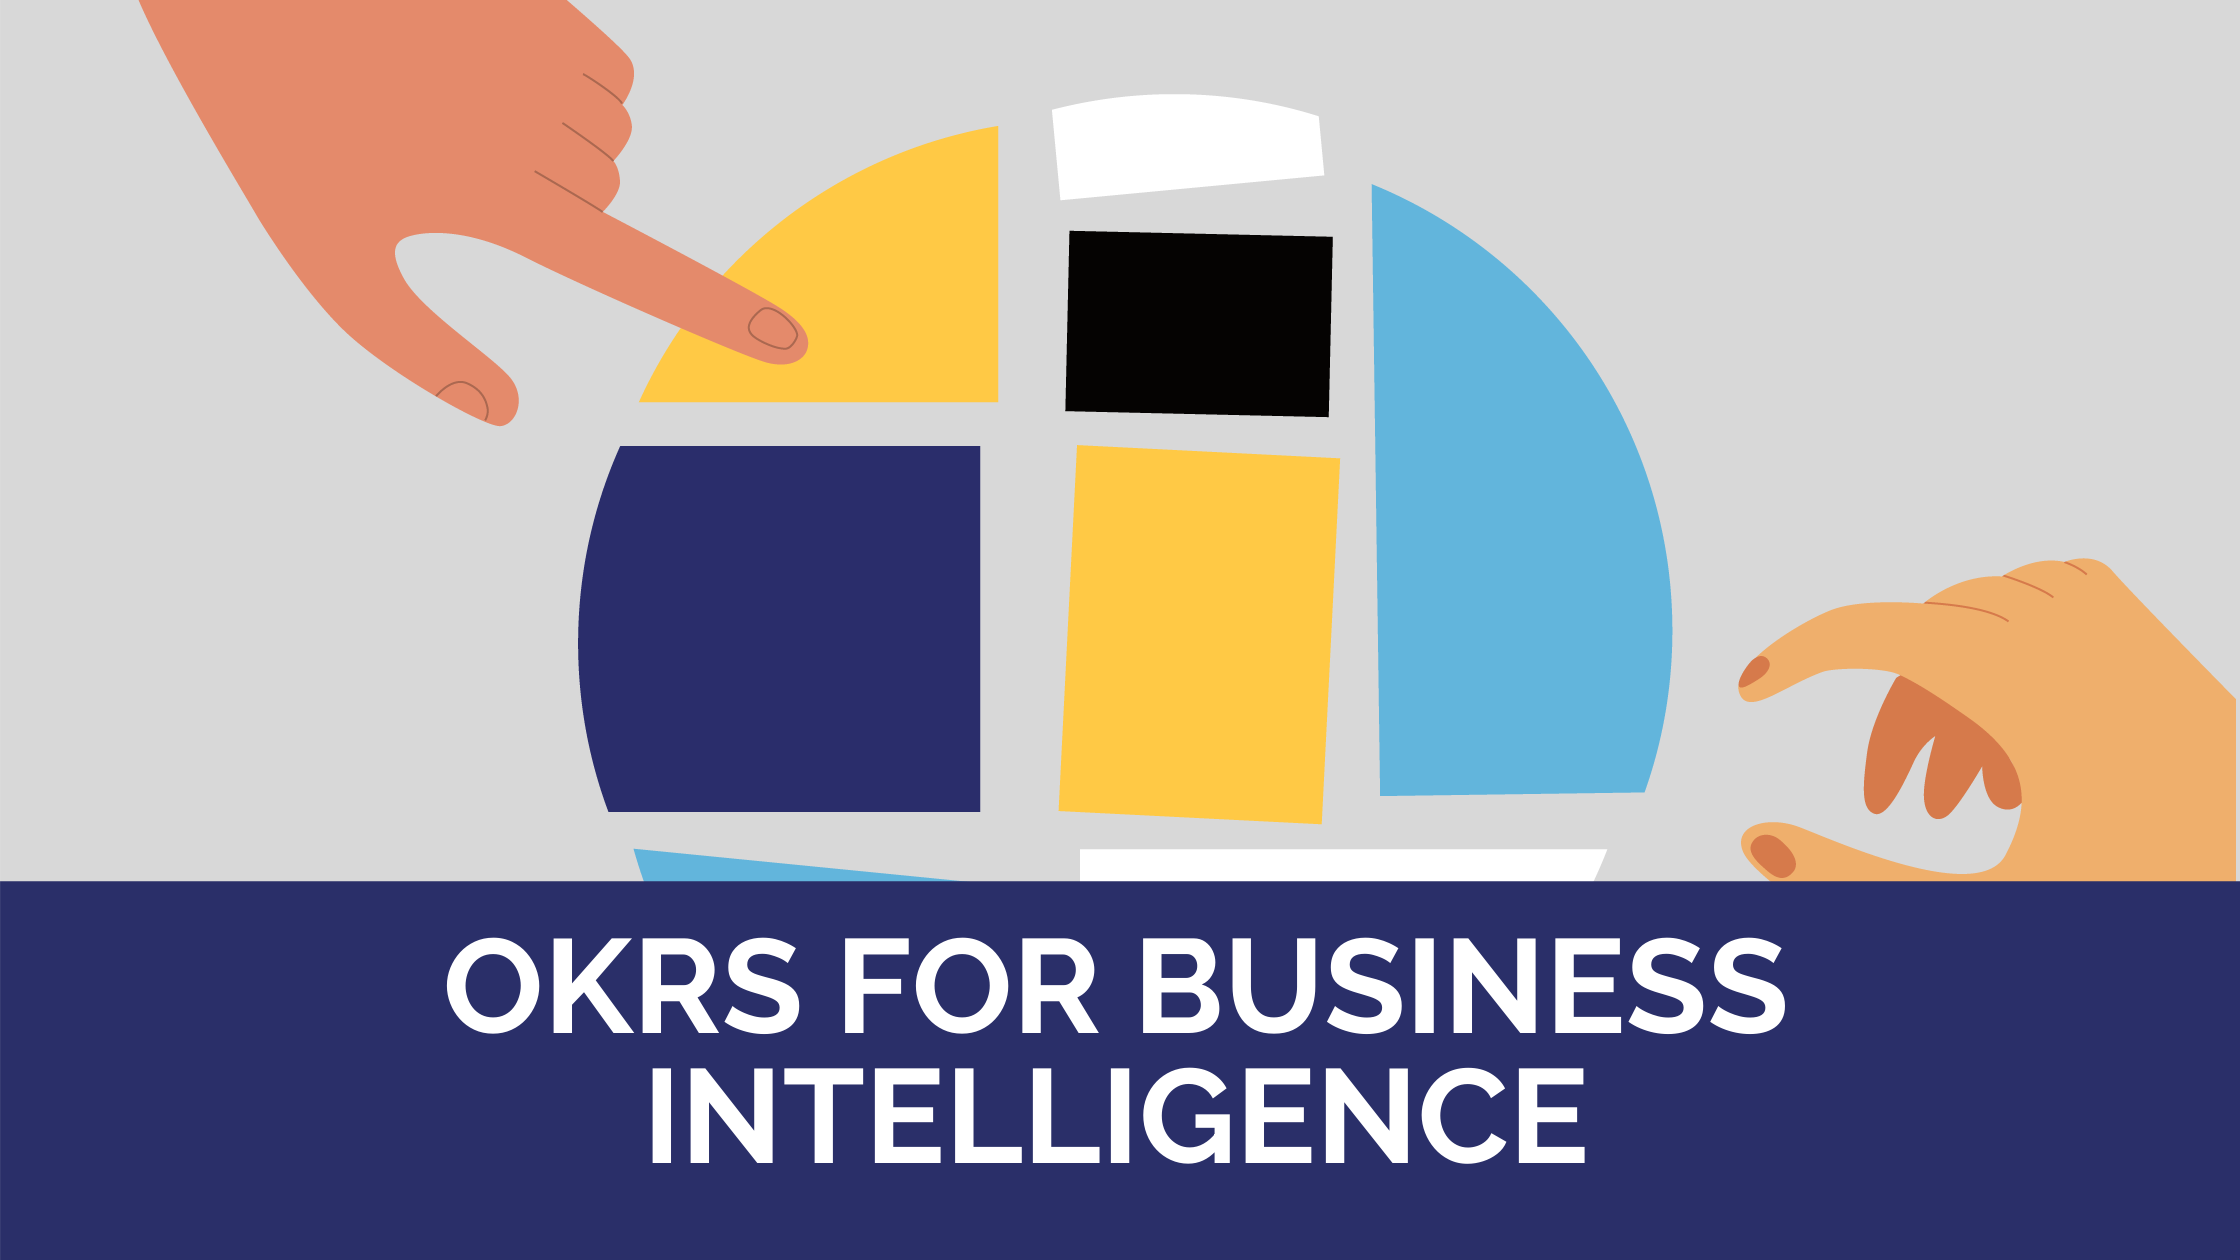 OKRs for Business Intelligence